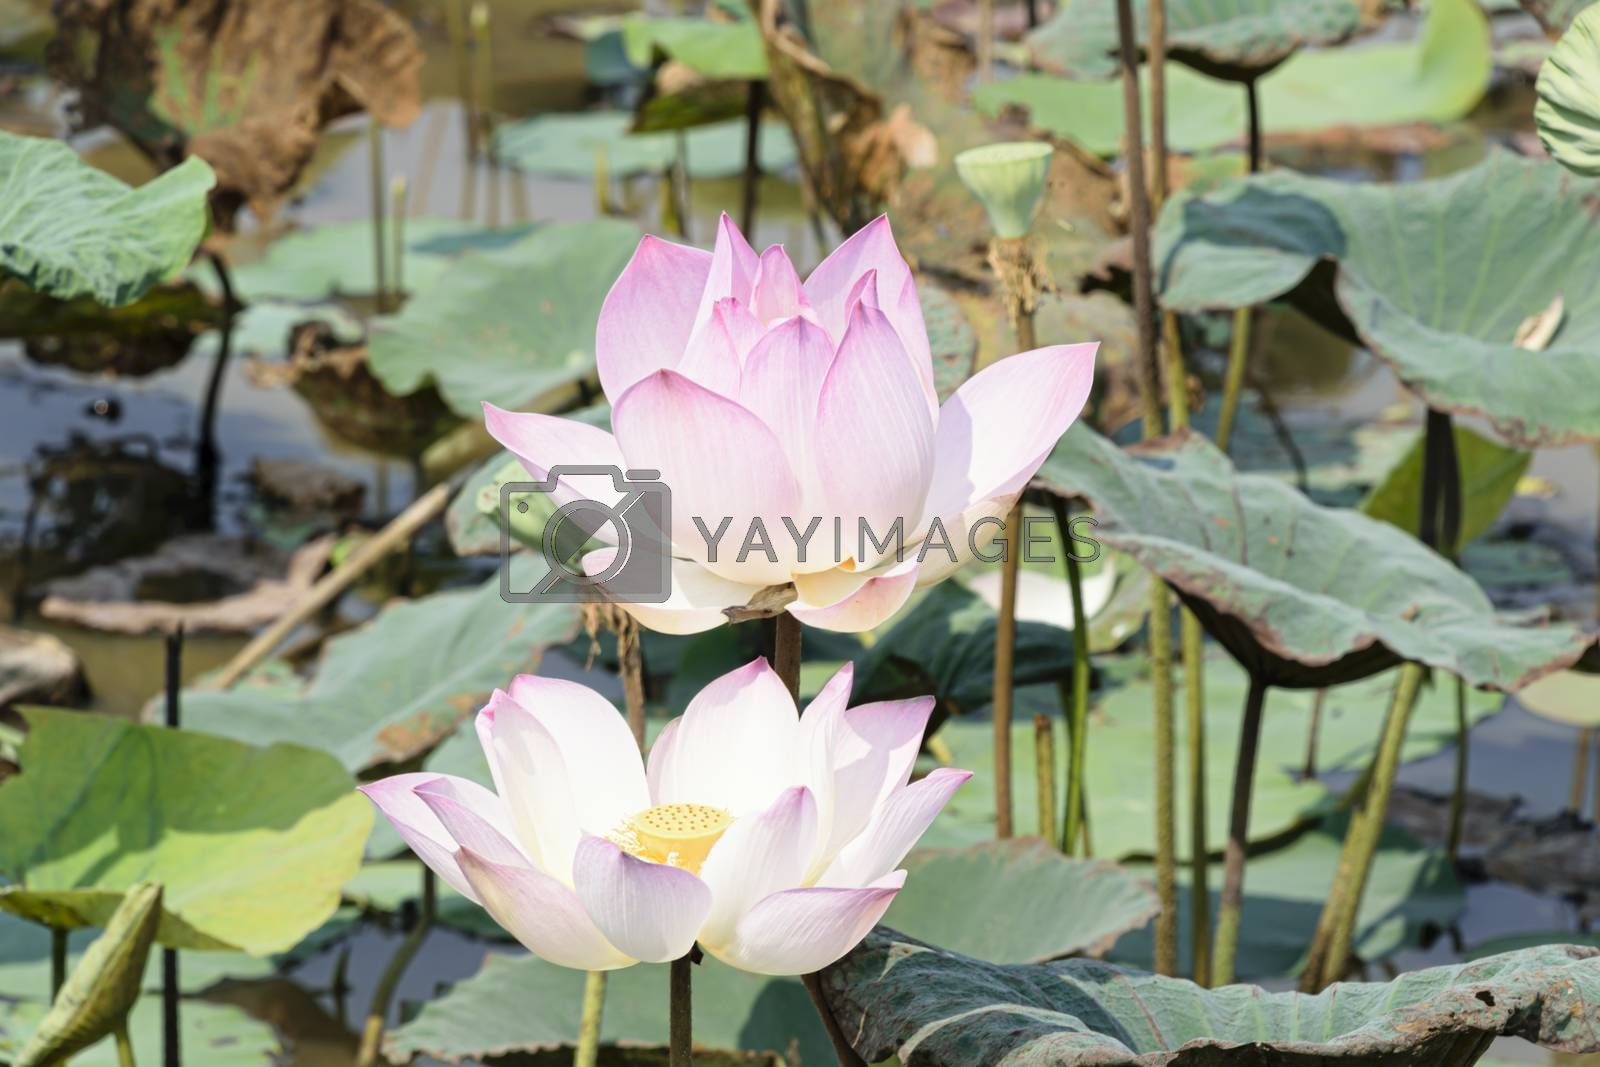 Cambodia, Tonle Sap - March 2016: Lotus flowers in bloom